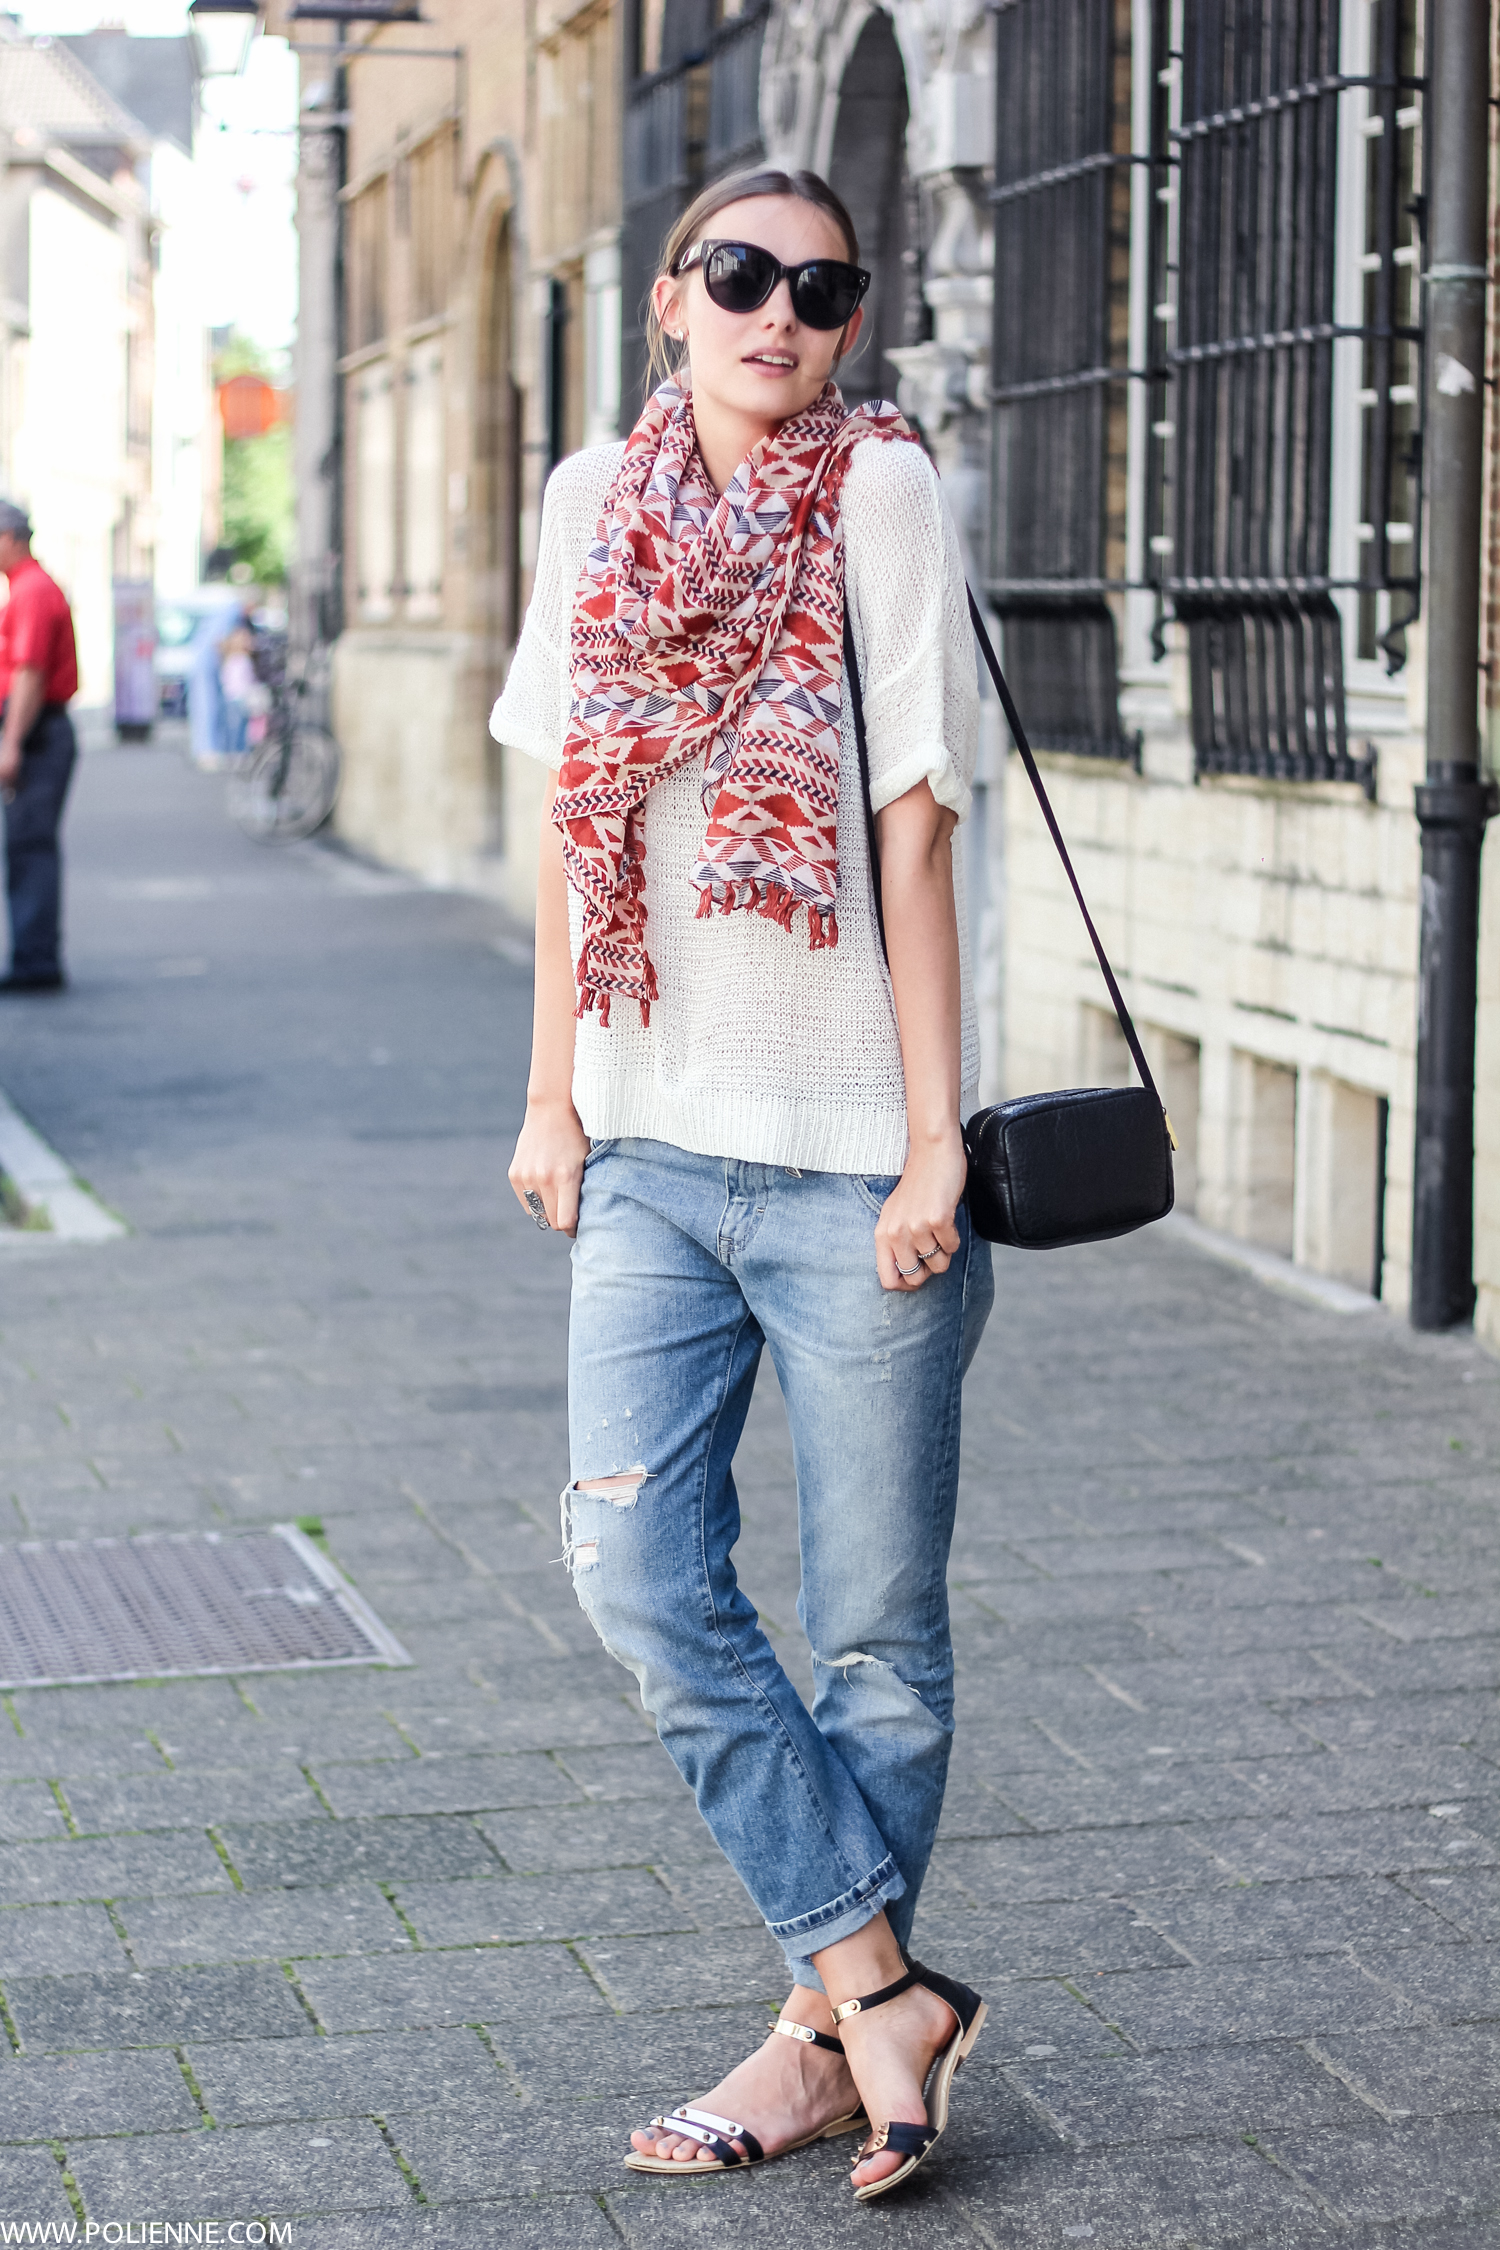 White t shirt fashion tips - To Spruce Up Your Outfit Add A Colourful Scarf The Boyfriend Jeans And T